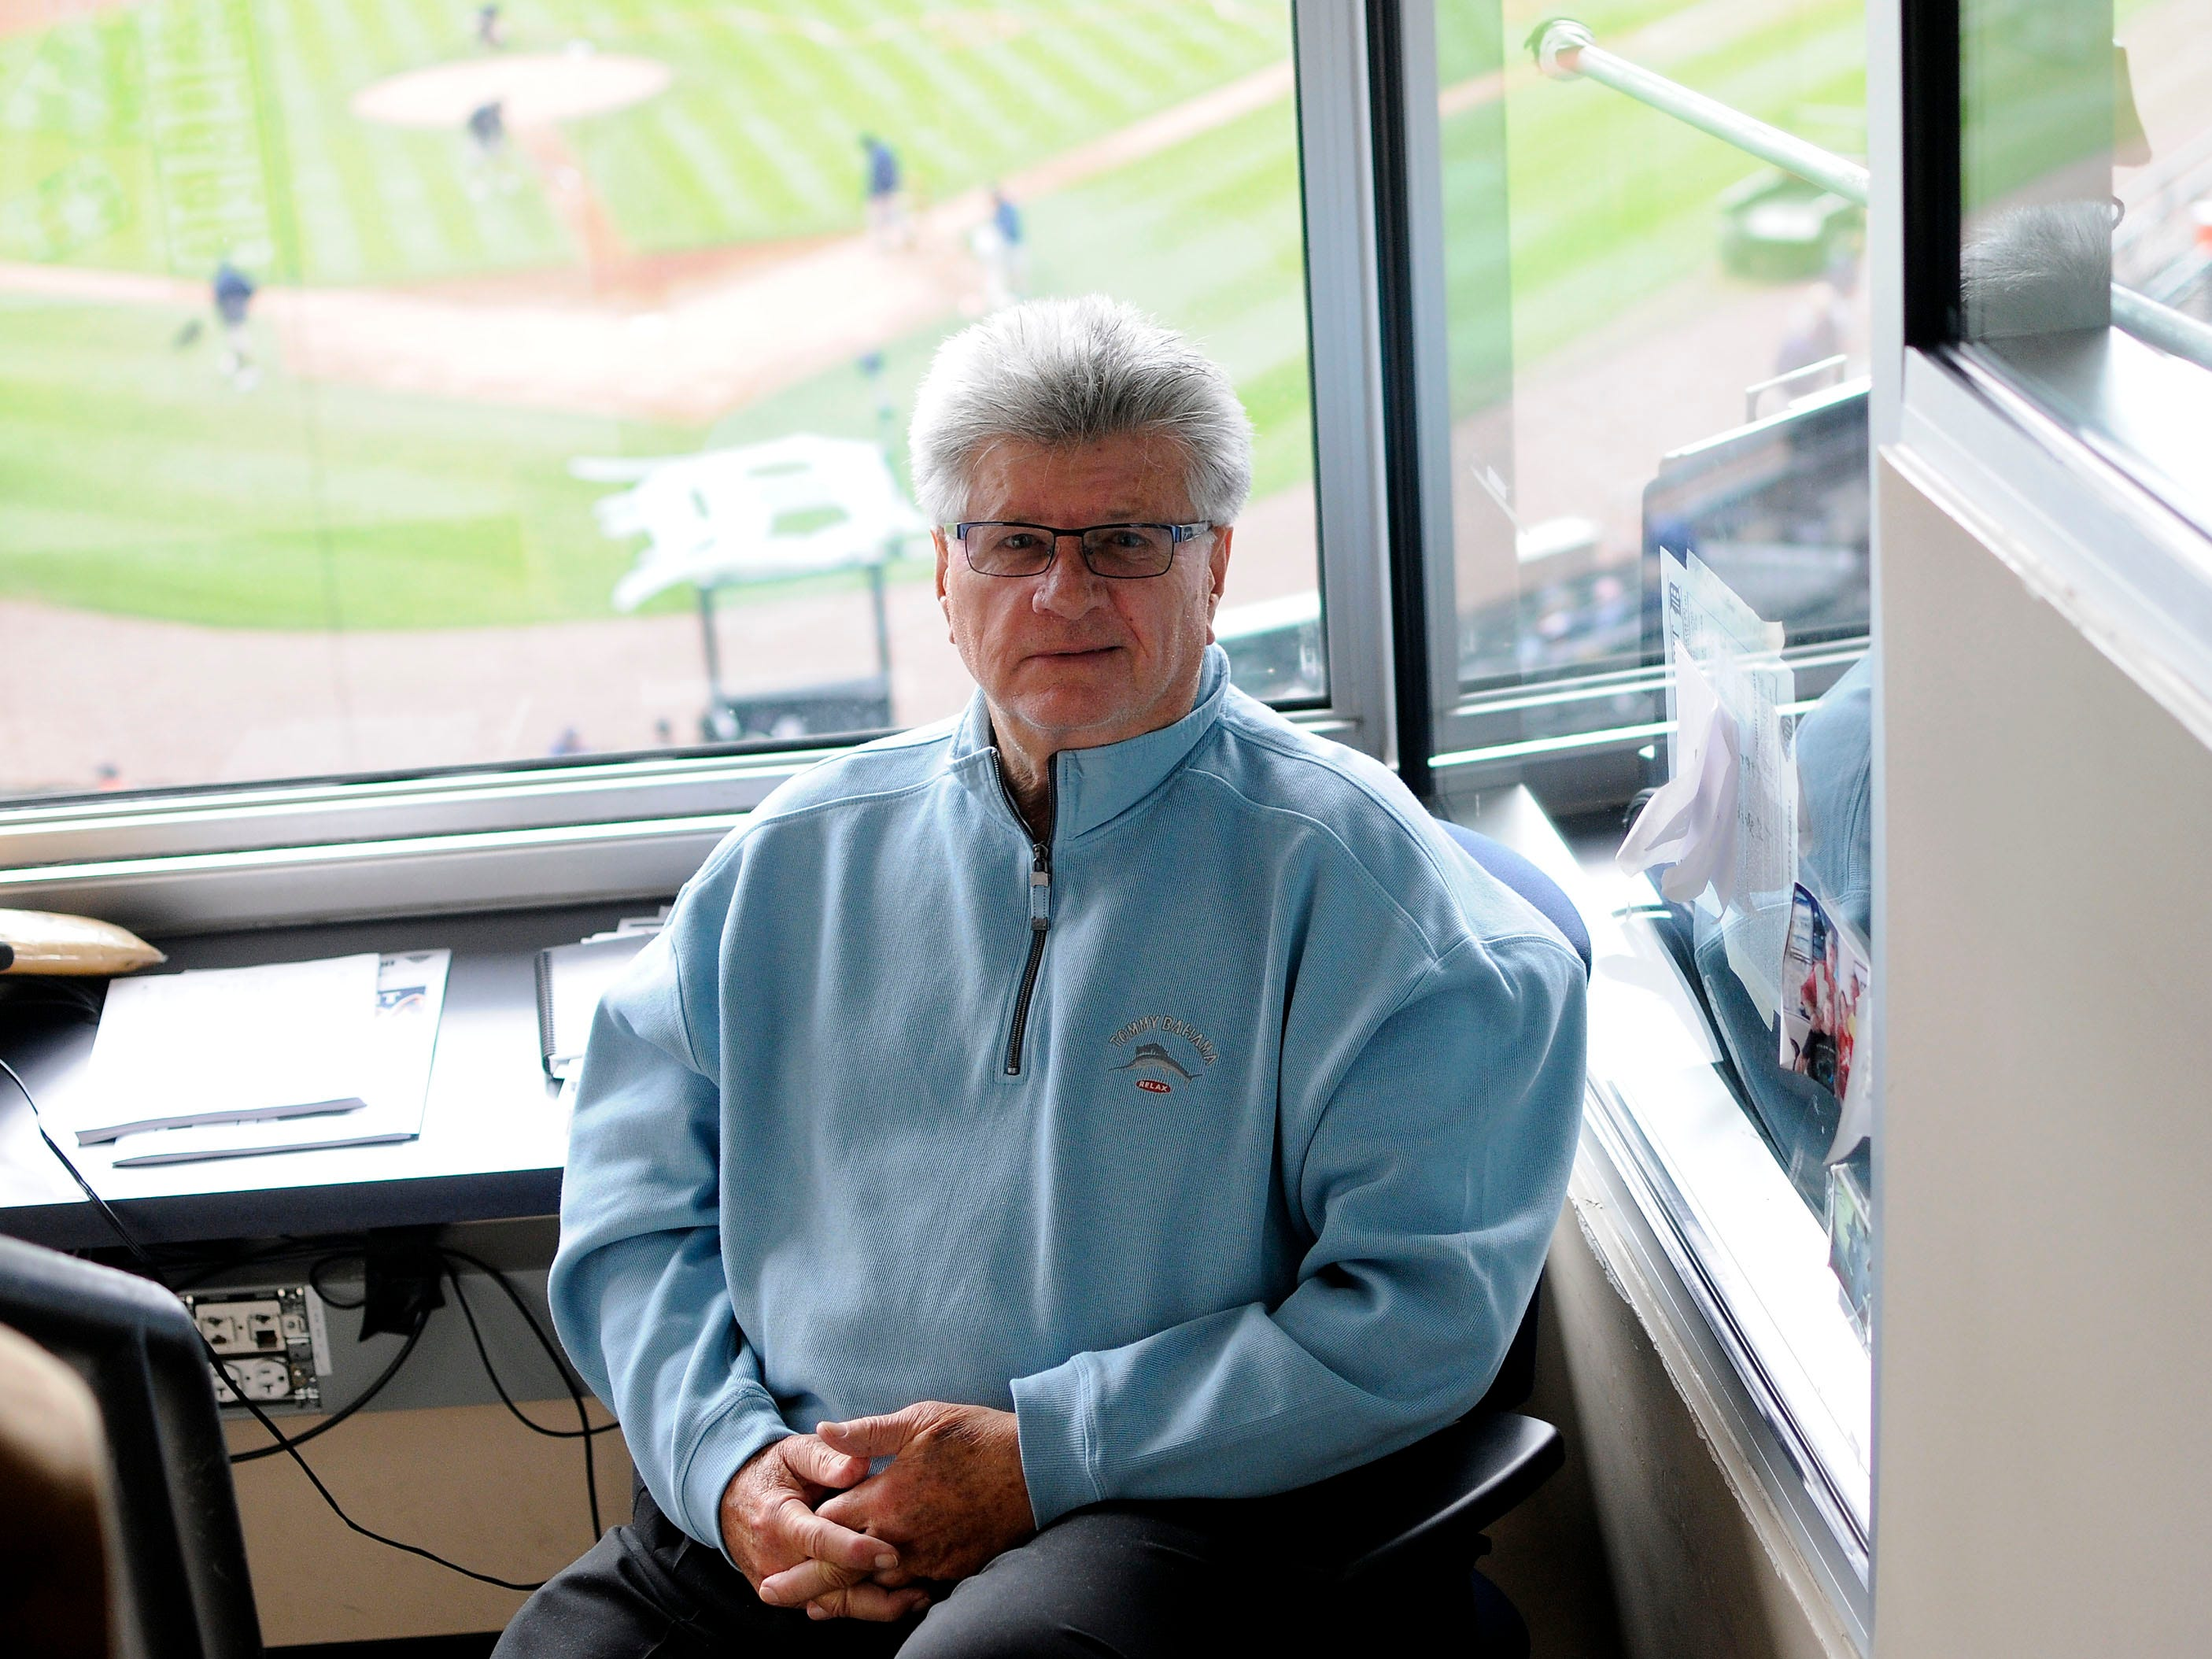 Long-time Tigers radio voice Jim Price got his broadcasting start with the team doing TV, in 1993 on PASS Sports with Jim Northrup. He worked for PASS through 1996, also working with Fred McLeod and Ernie Harwell. He was part of the first Fox Sports Detroit season in 1997, alongside McLeod and Harwell.